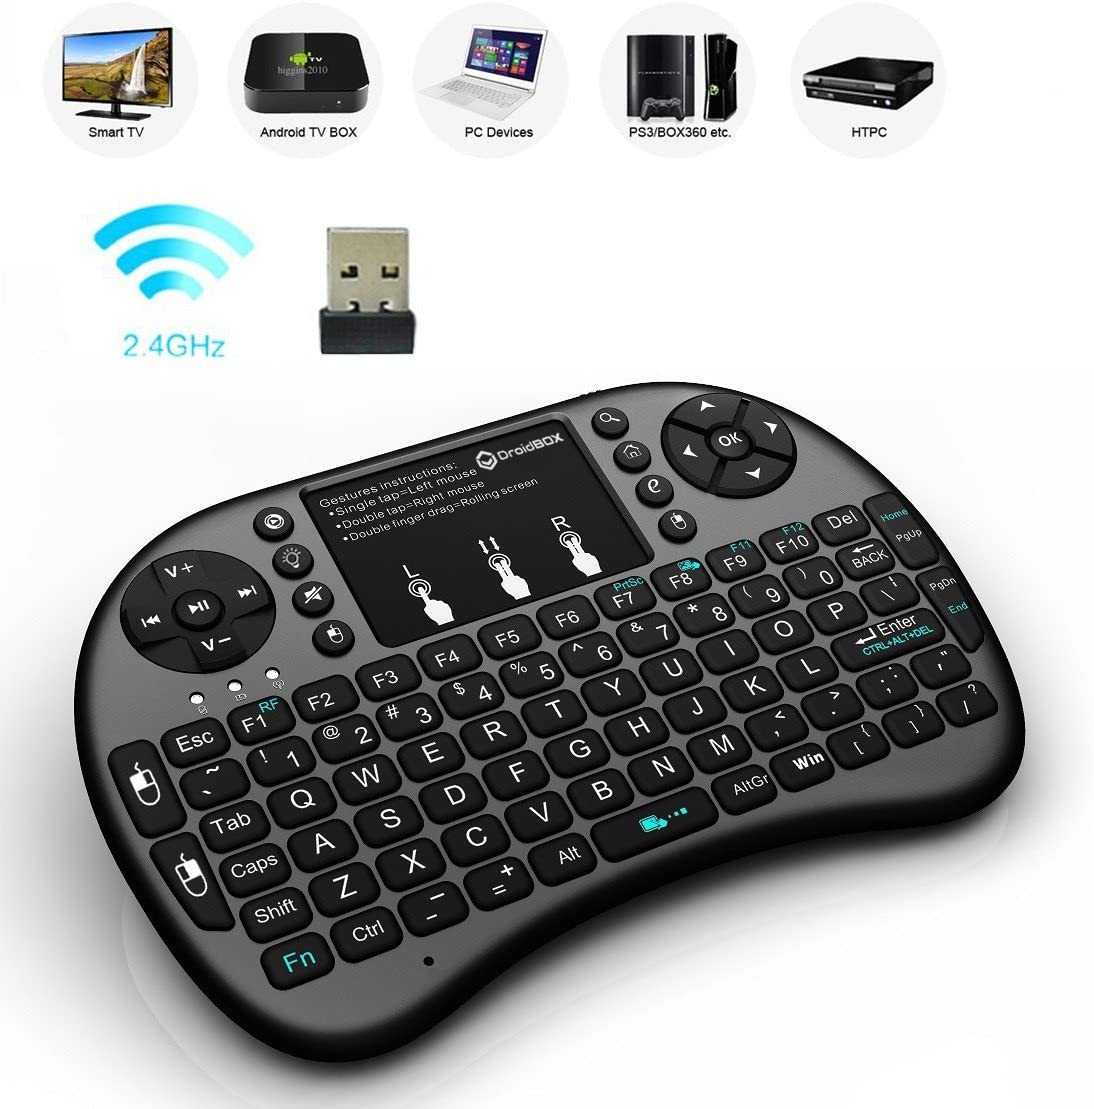 Mini teclado inalámbrico, 2.4 G Mini Wireless Touchpad Ratón Combo. Smart TV, PC, Android TV Box, etc.: Amazon.es: Electrónica